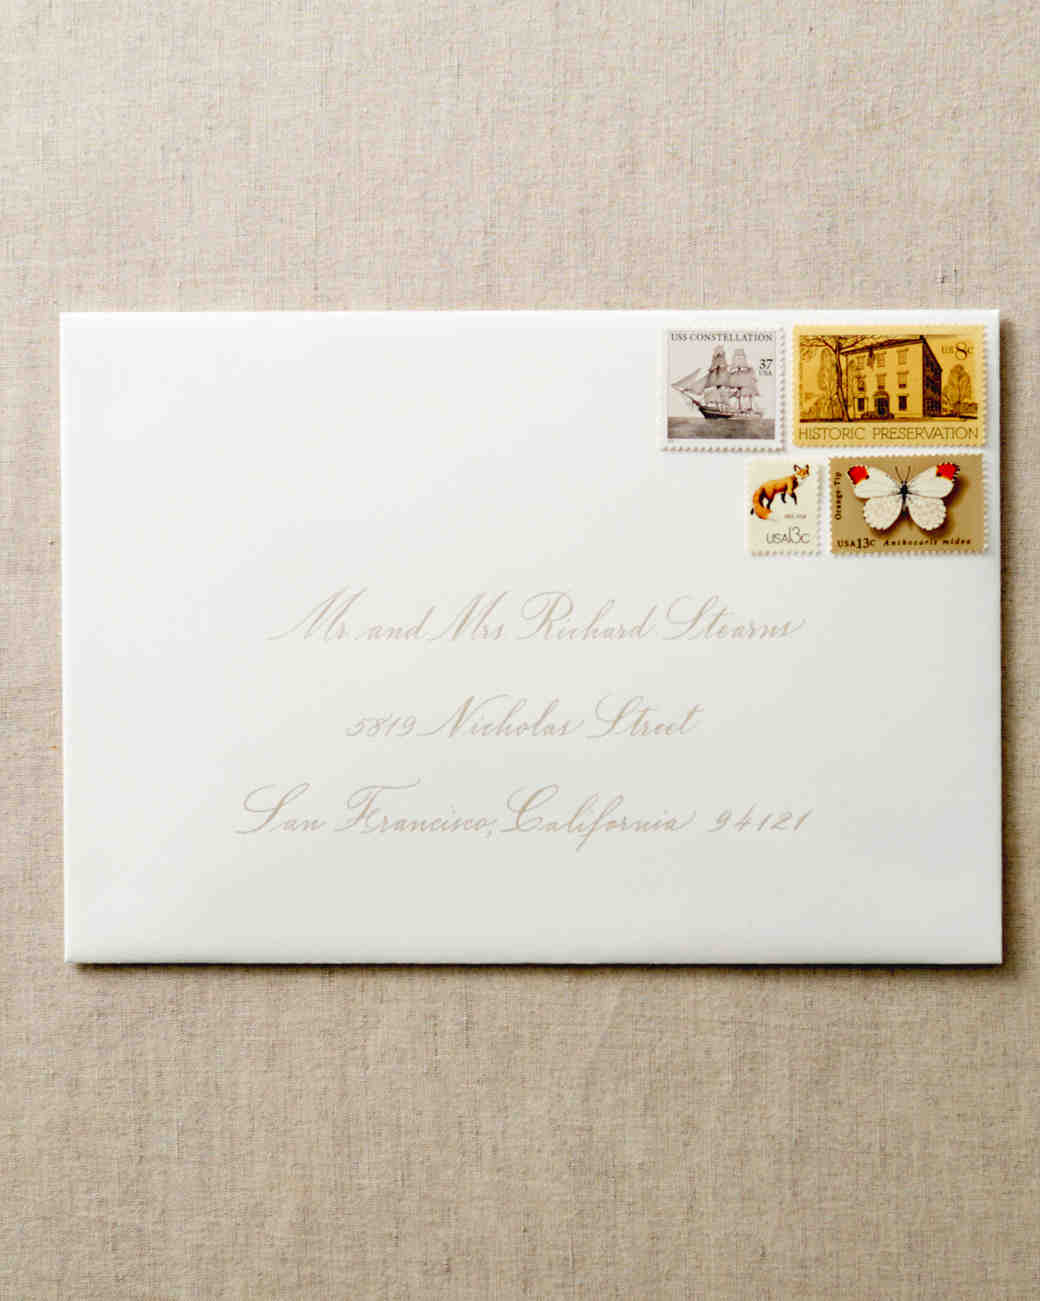 How To Address Guests On Wedding Invitation Envelopes Martha - Wedding invitation envelope address template